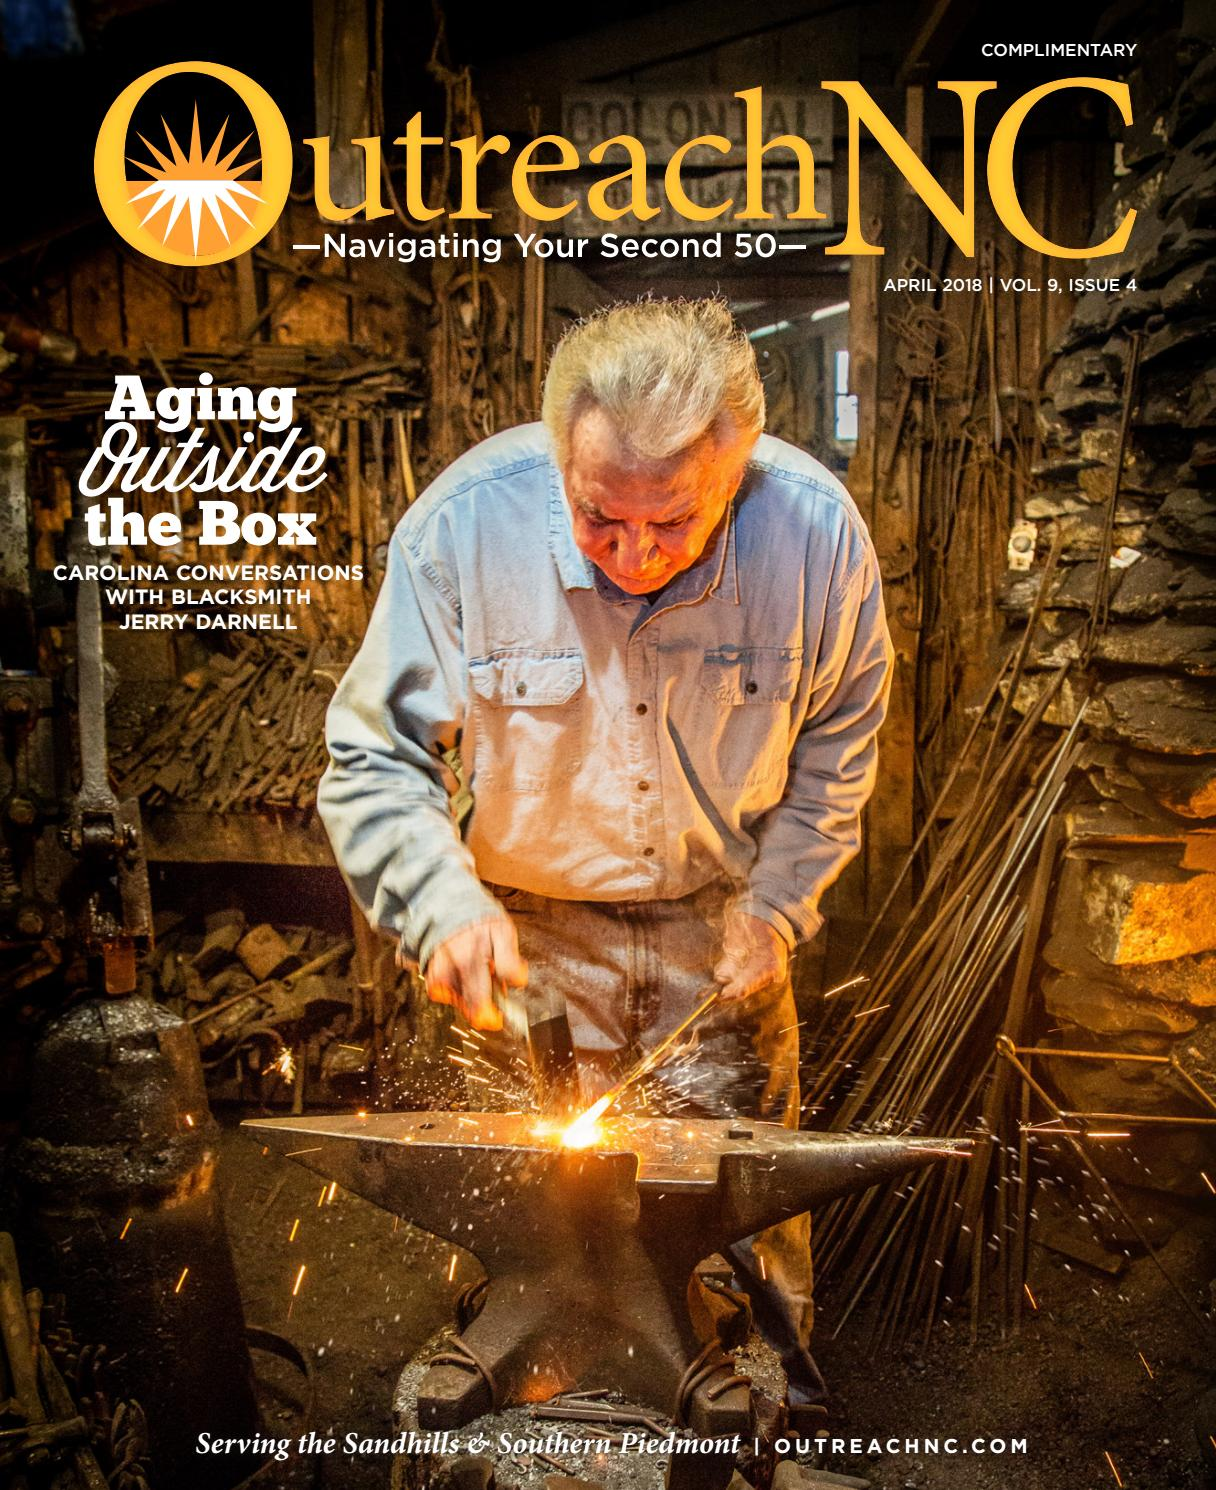 Outreachnc April 2018 By Magazine Issuu Troubleshooting Dead Outlets The Family Handyman